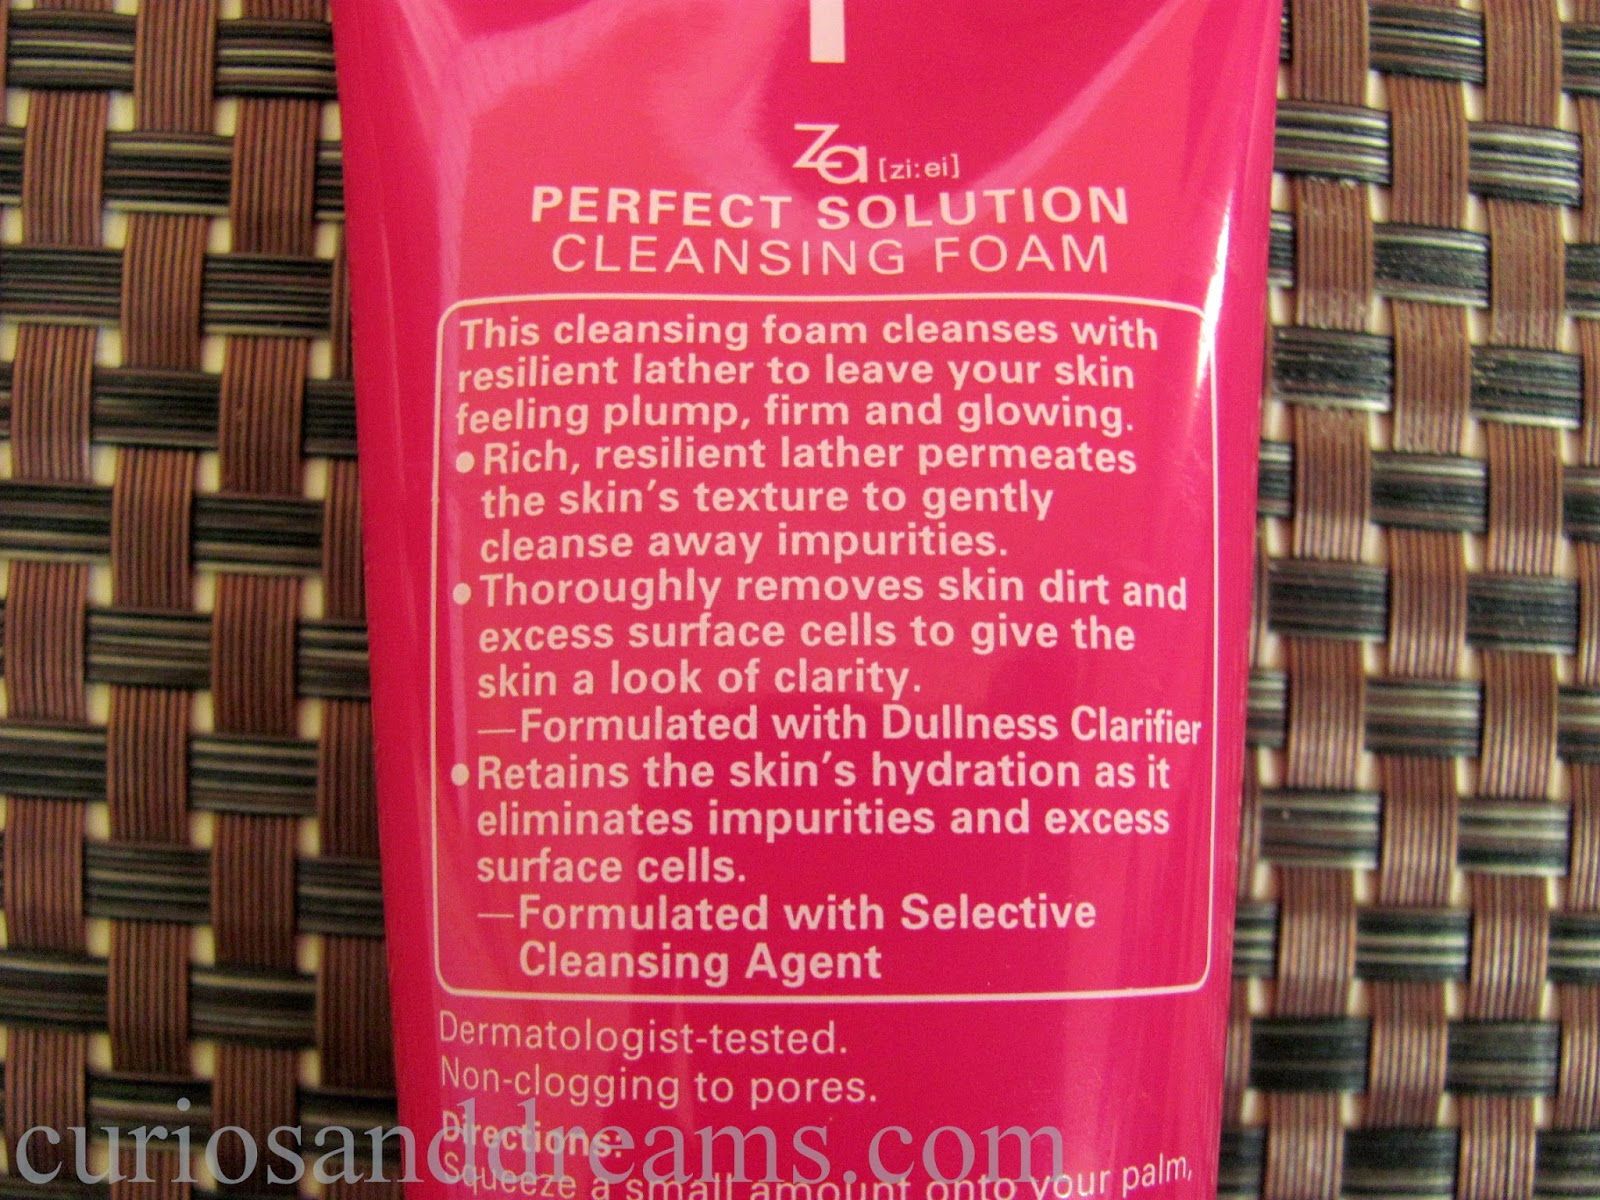 Za Perfect Solution Cleansing Foam